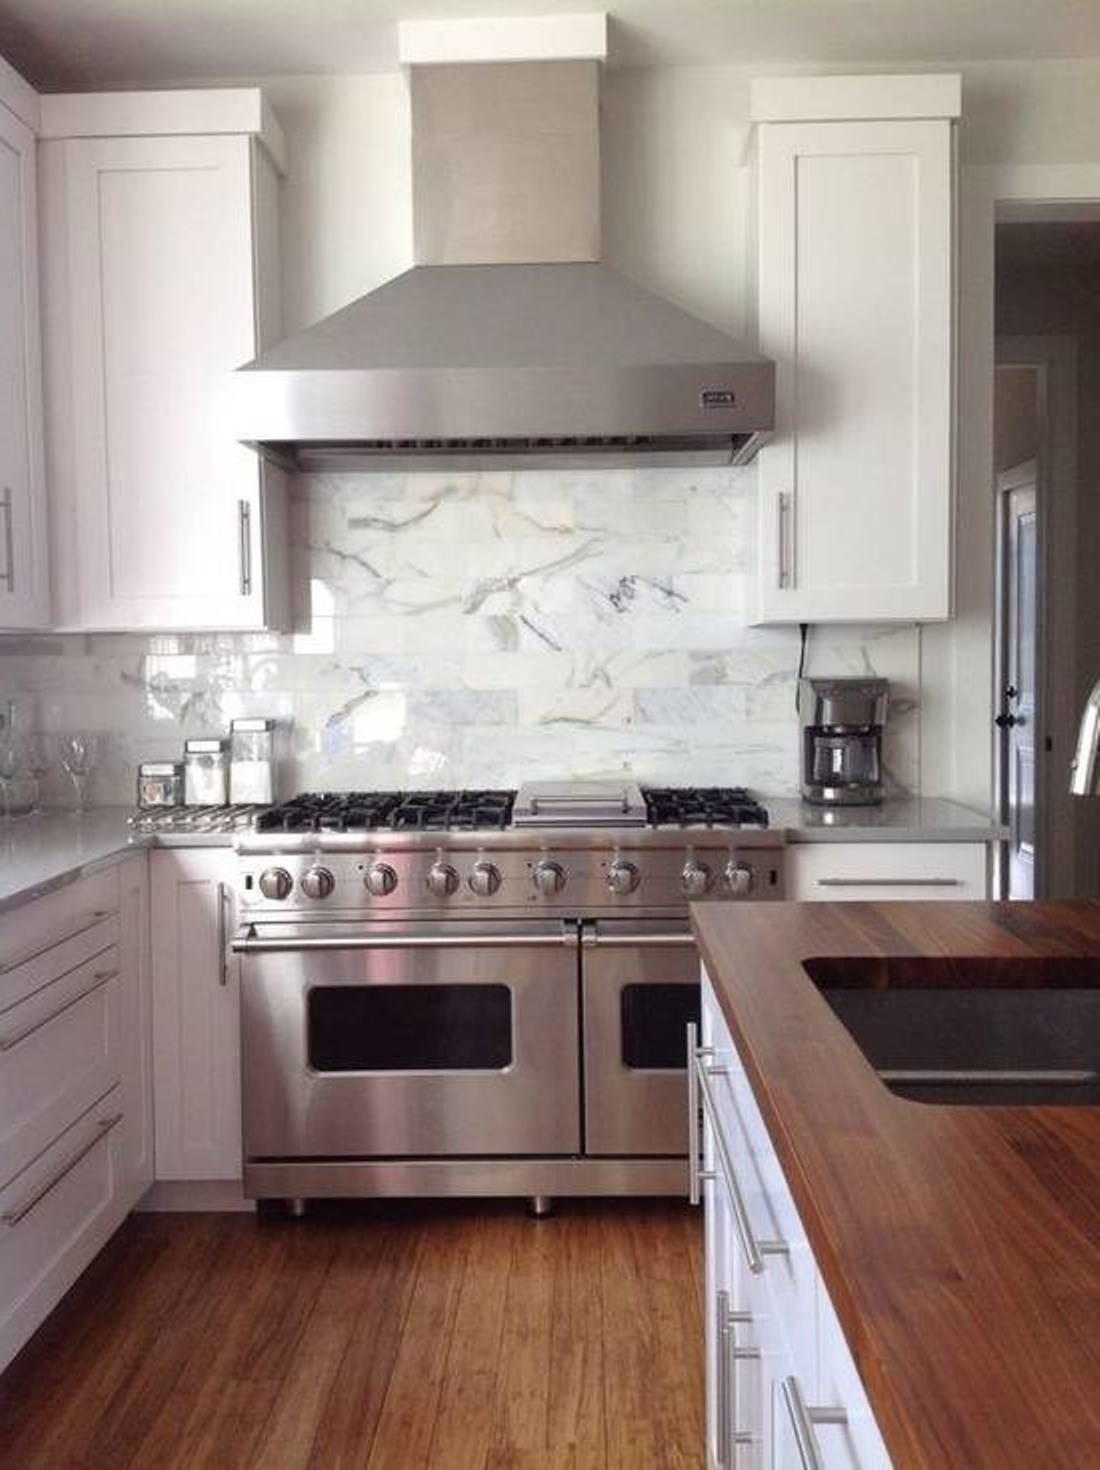 Kitchen Stainless Steel Countertops White Cabinets